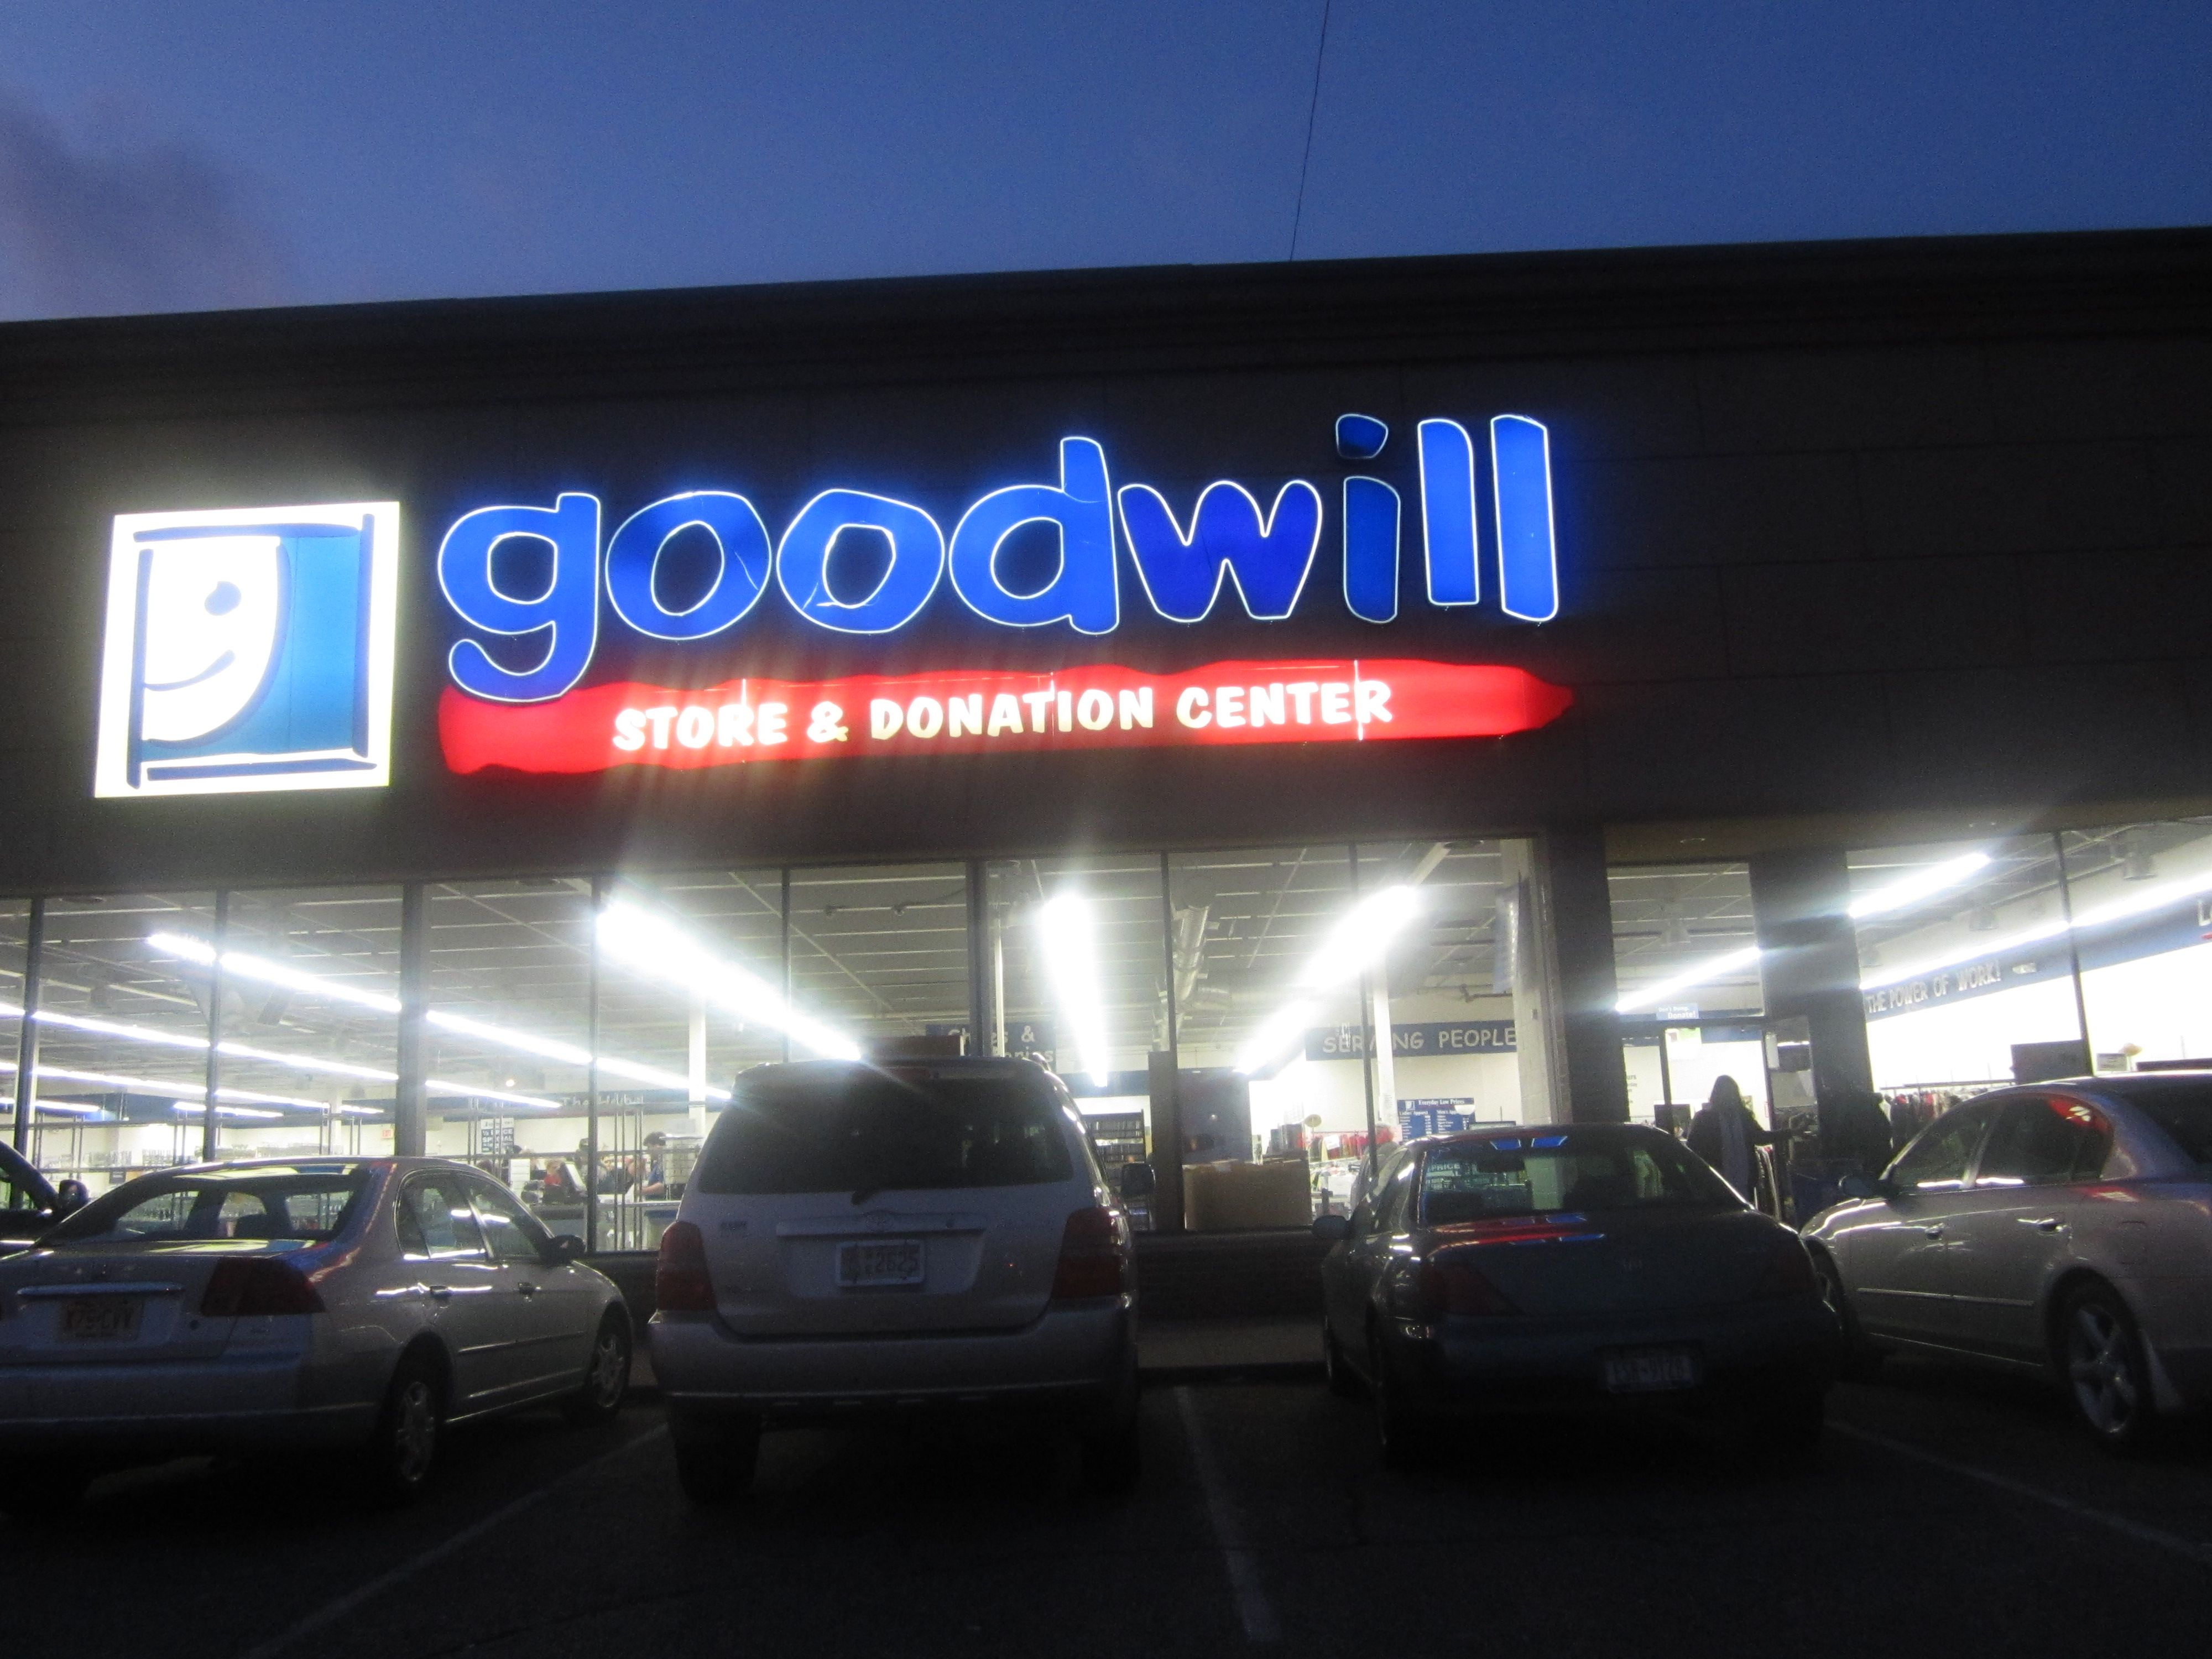 goodwill store paramus nj on 1 20 14 rp by http john delgado